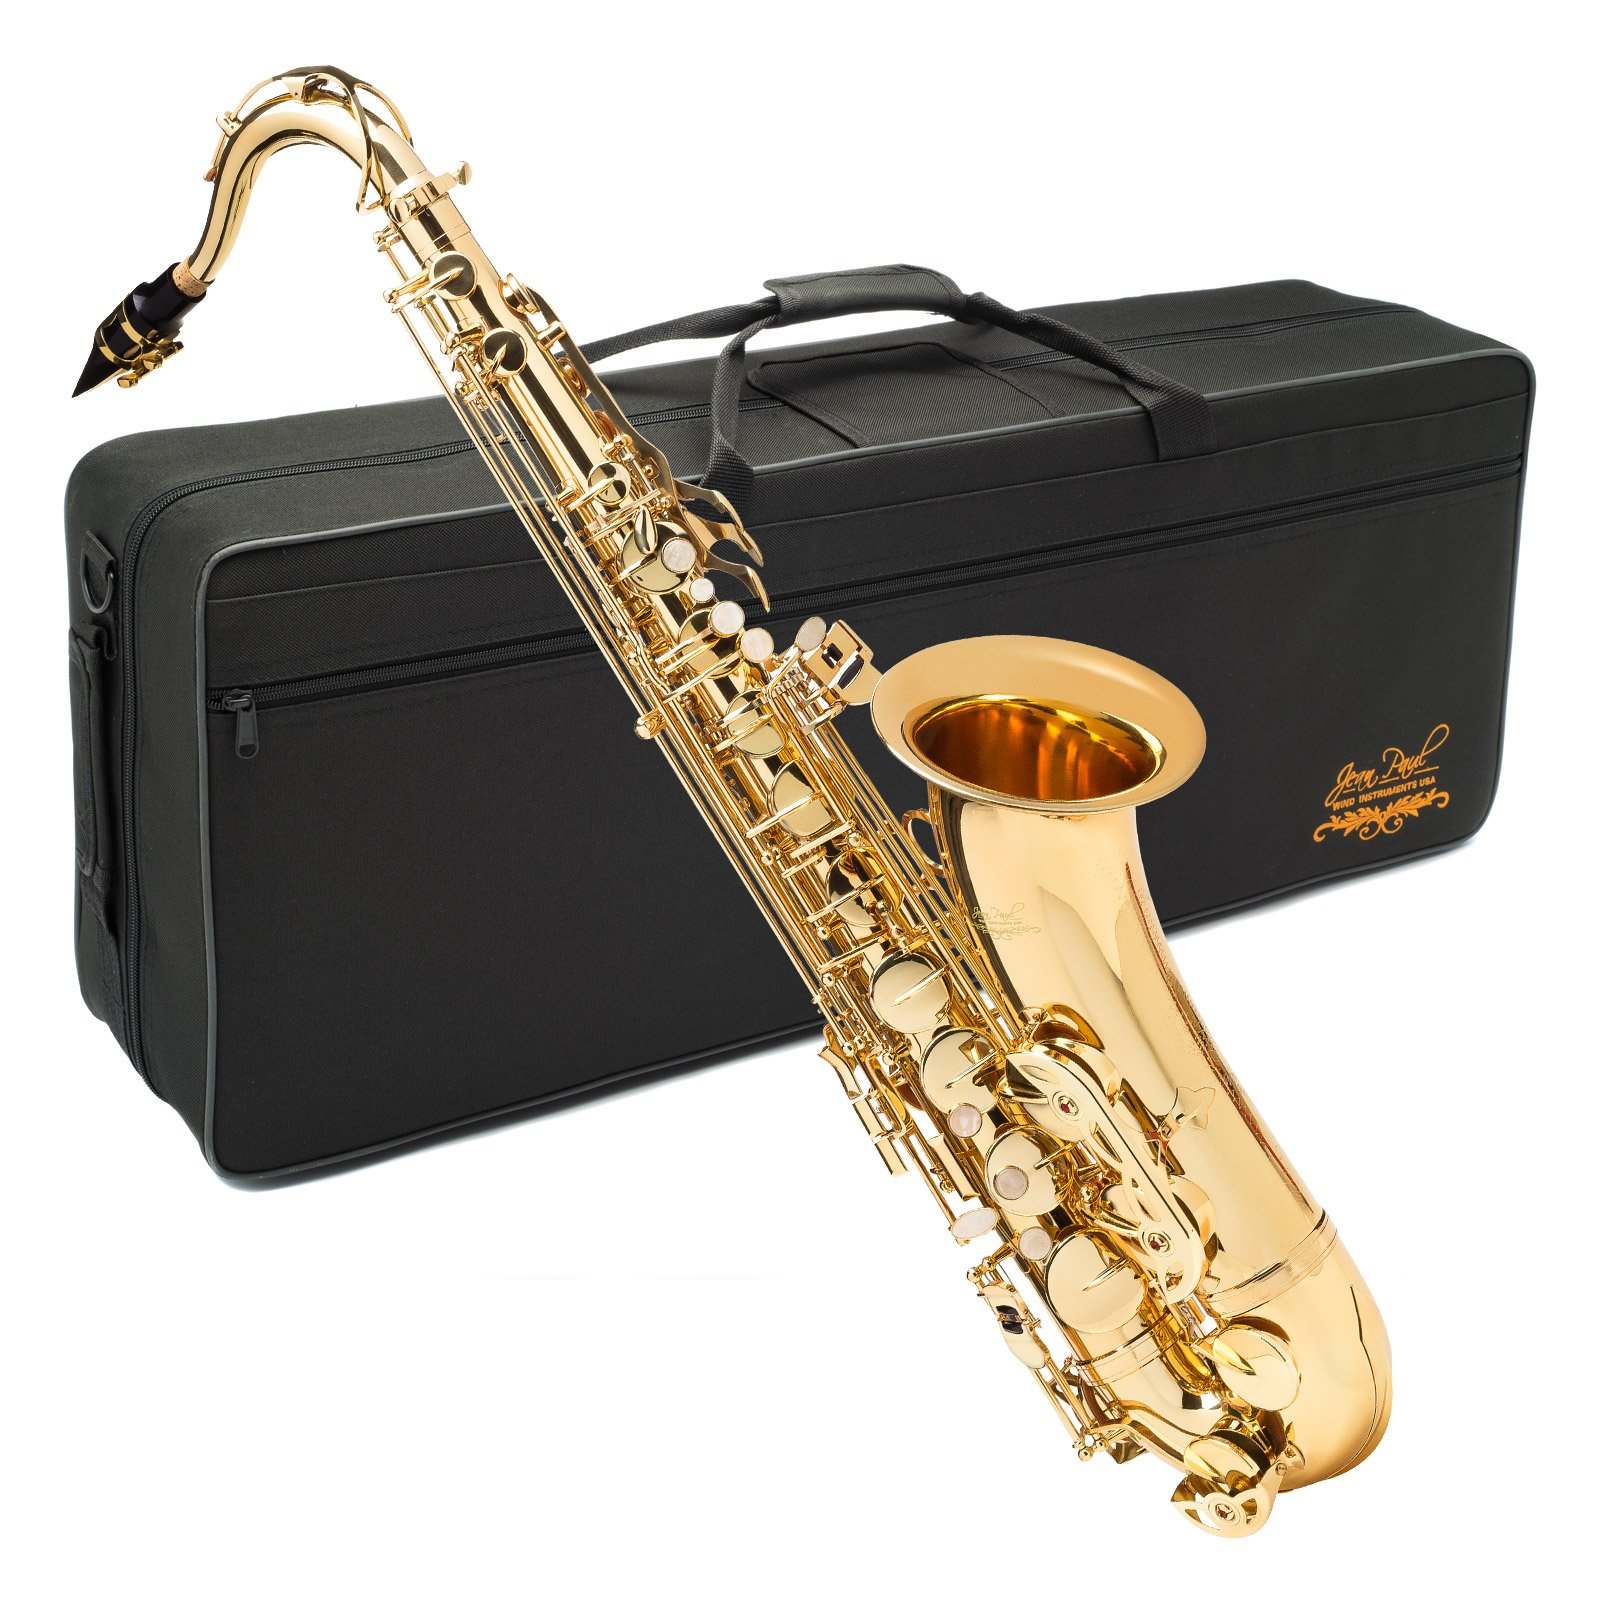 Jean Paul USA TS-400 Tenor Saxophone by Jean Paul USA (Image #1)